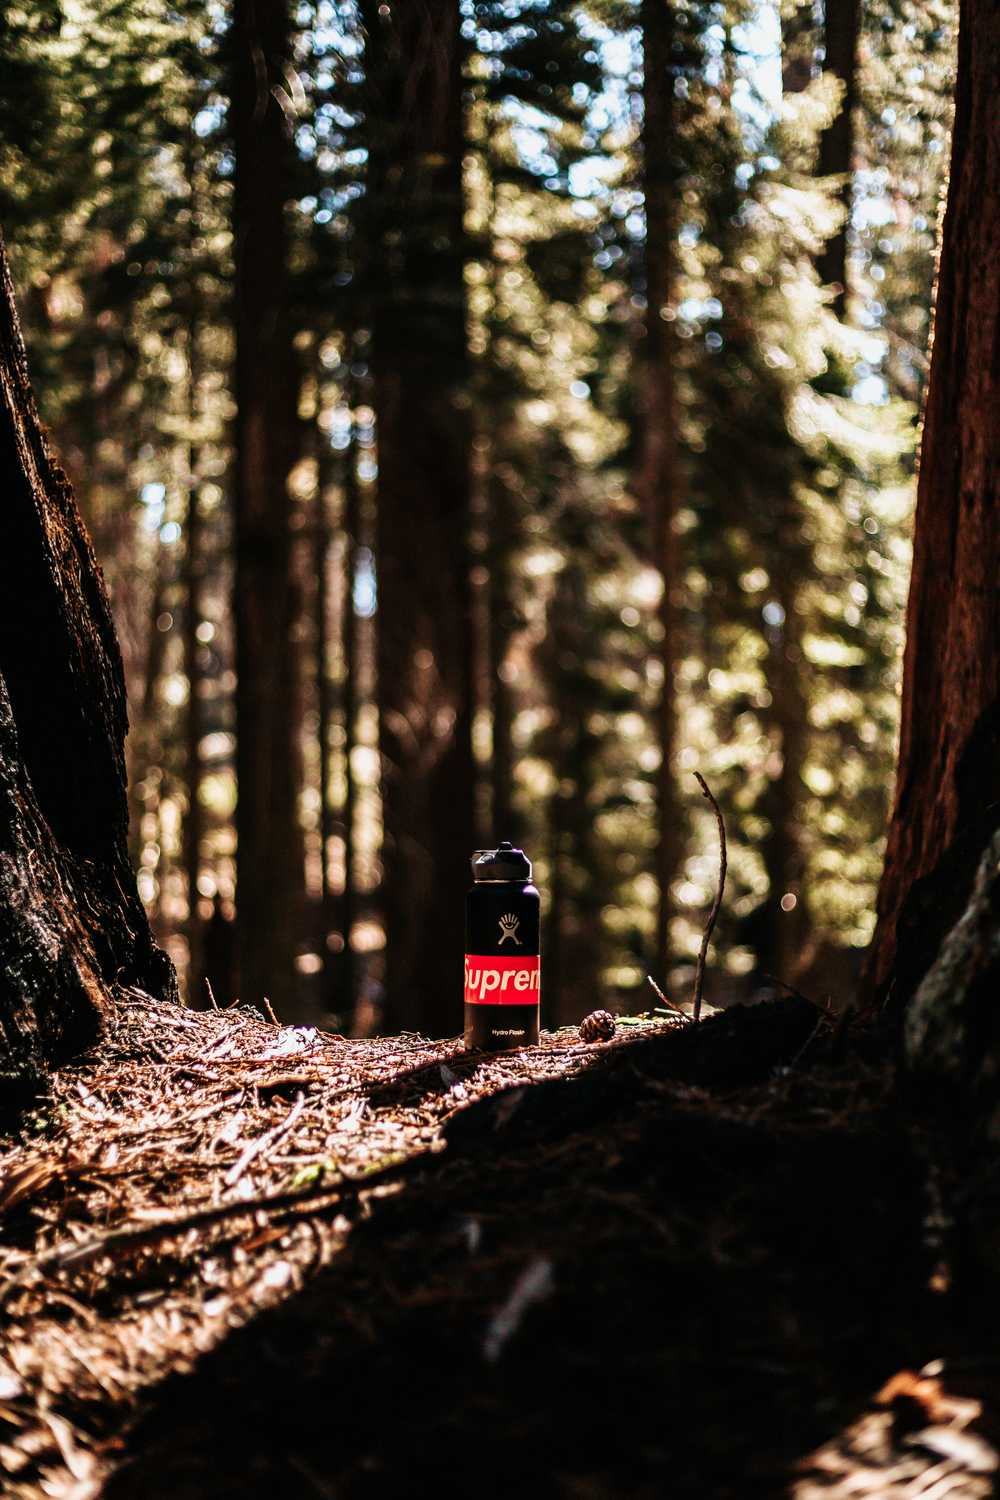 black and red Supreme bottle between two brown tree trunks selective fucos photo